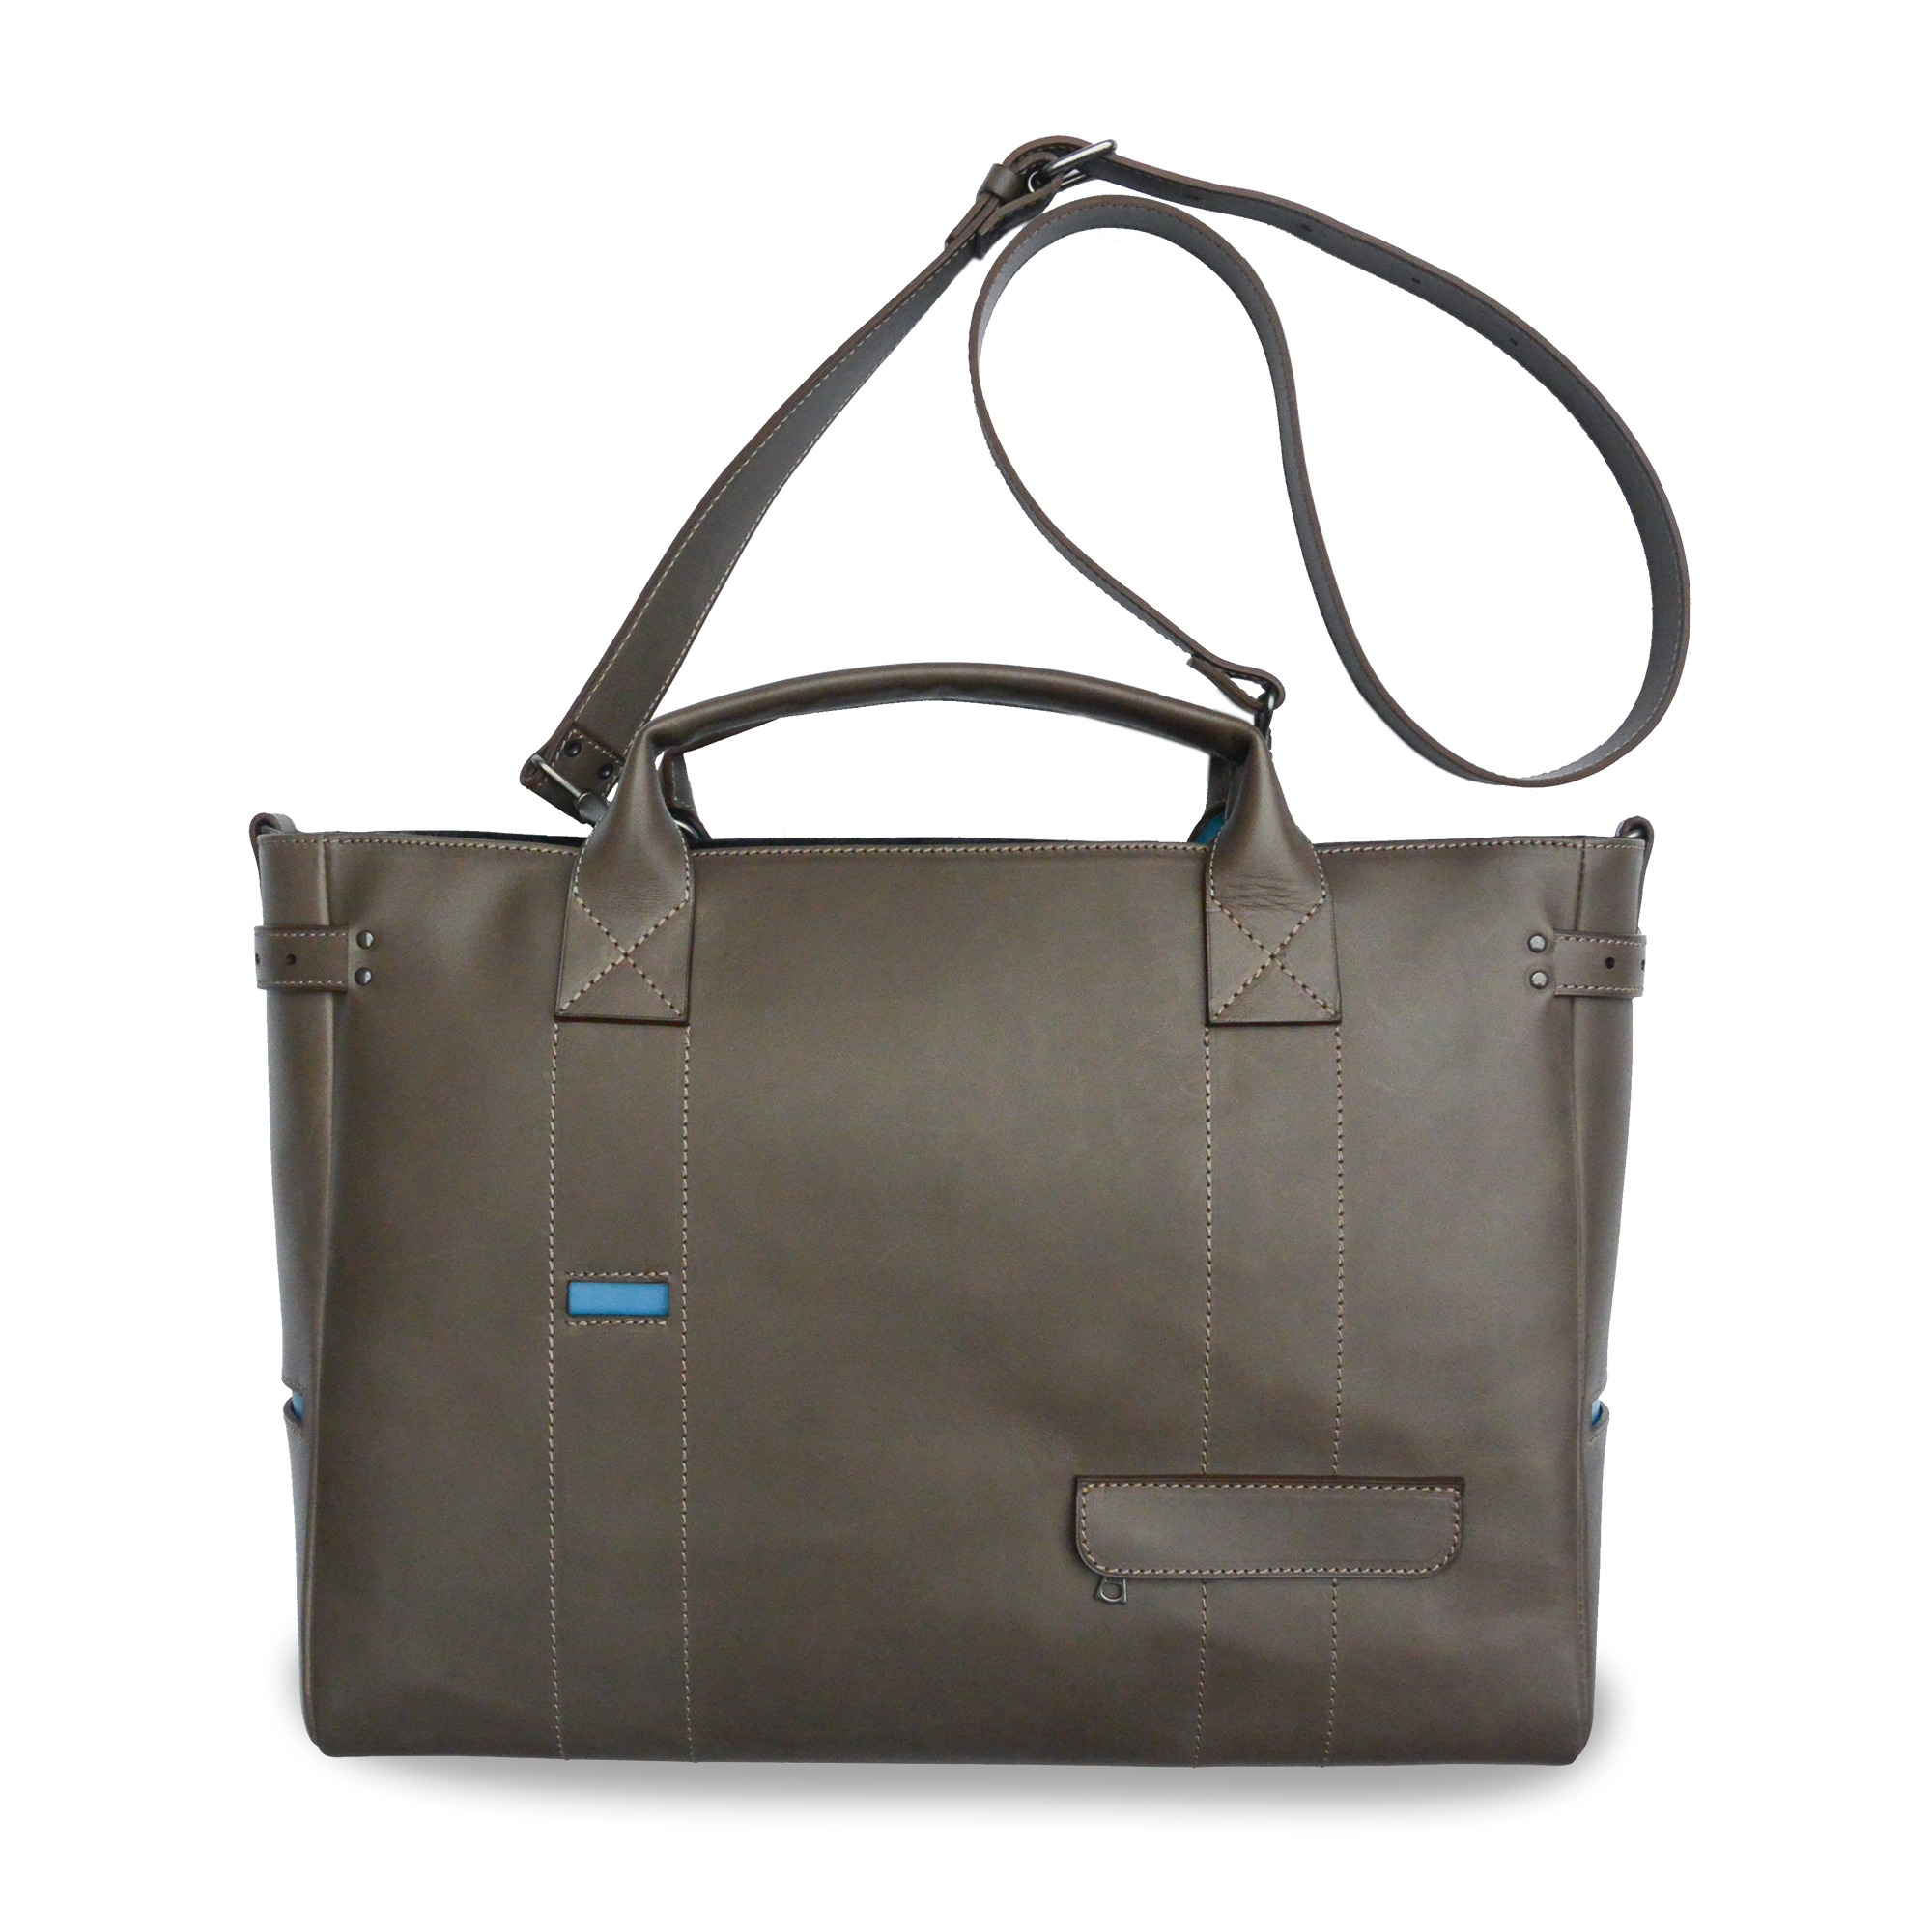 Sac トート バッグ Laurier